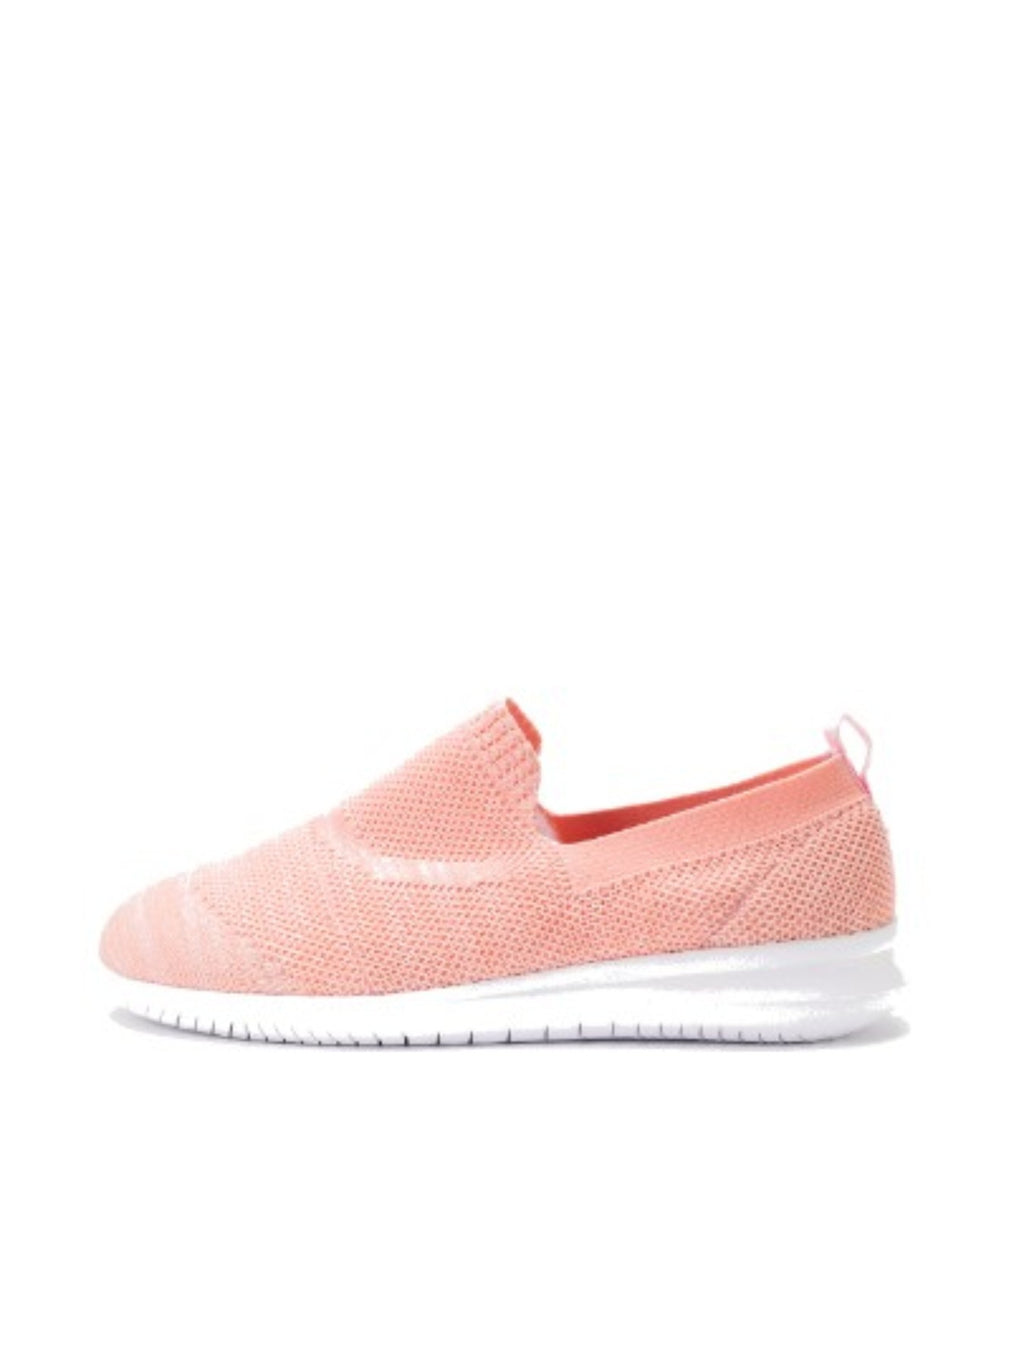 Larrie Pink Lightweight Style Sporty Sneakers